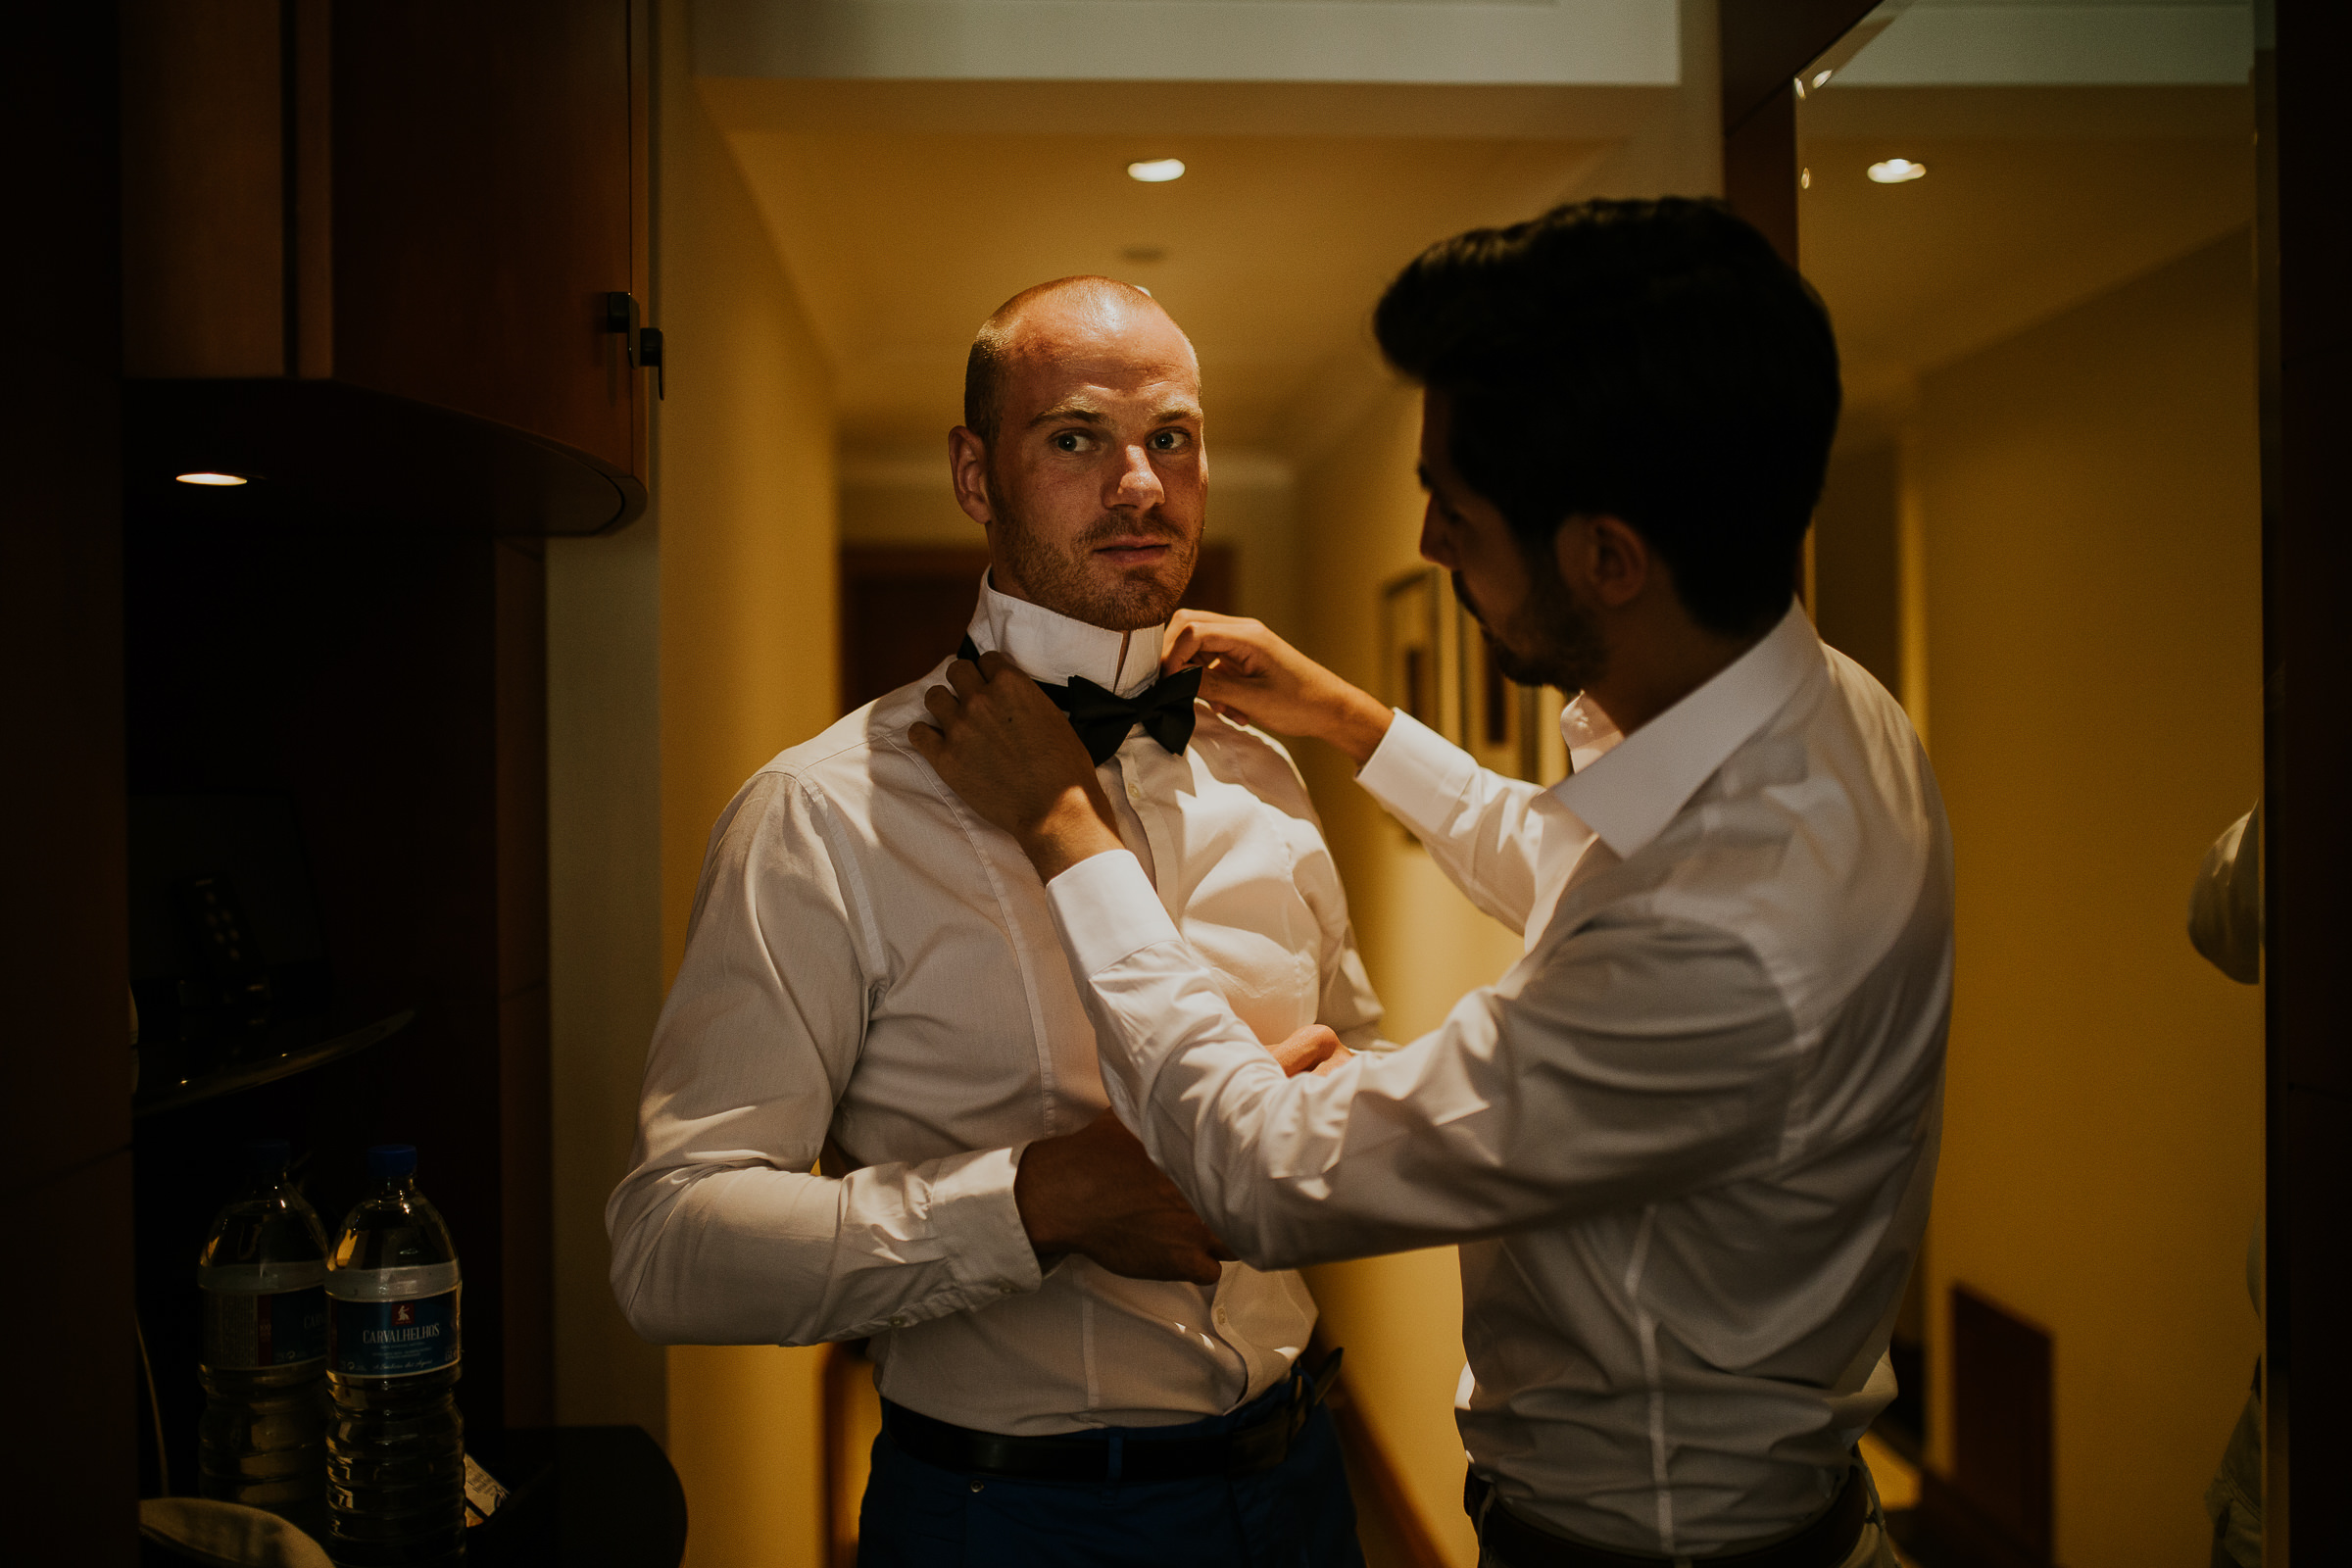 Groom helping the best man fixing his bow tie